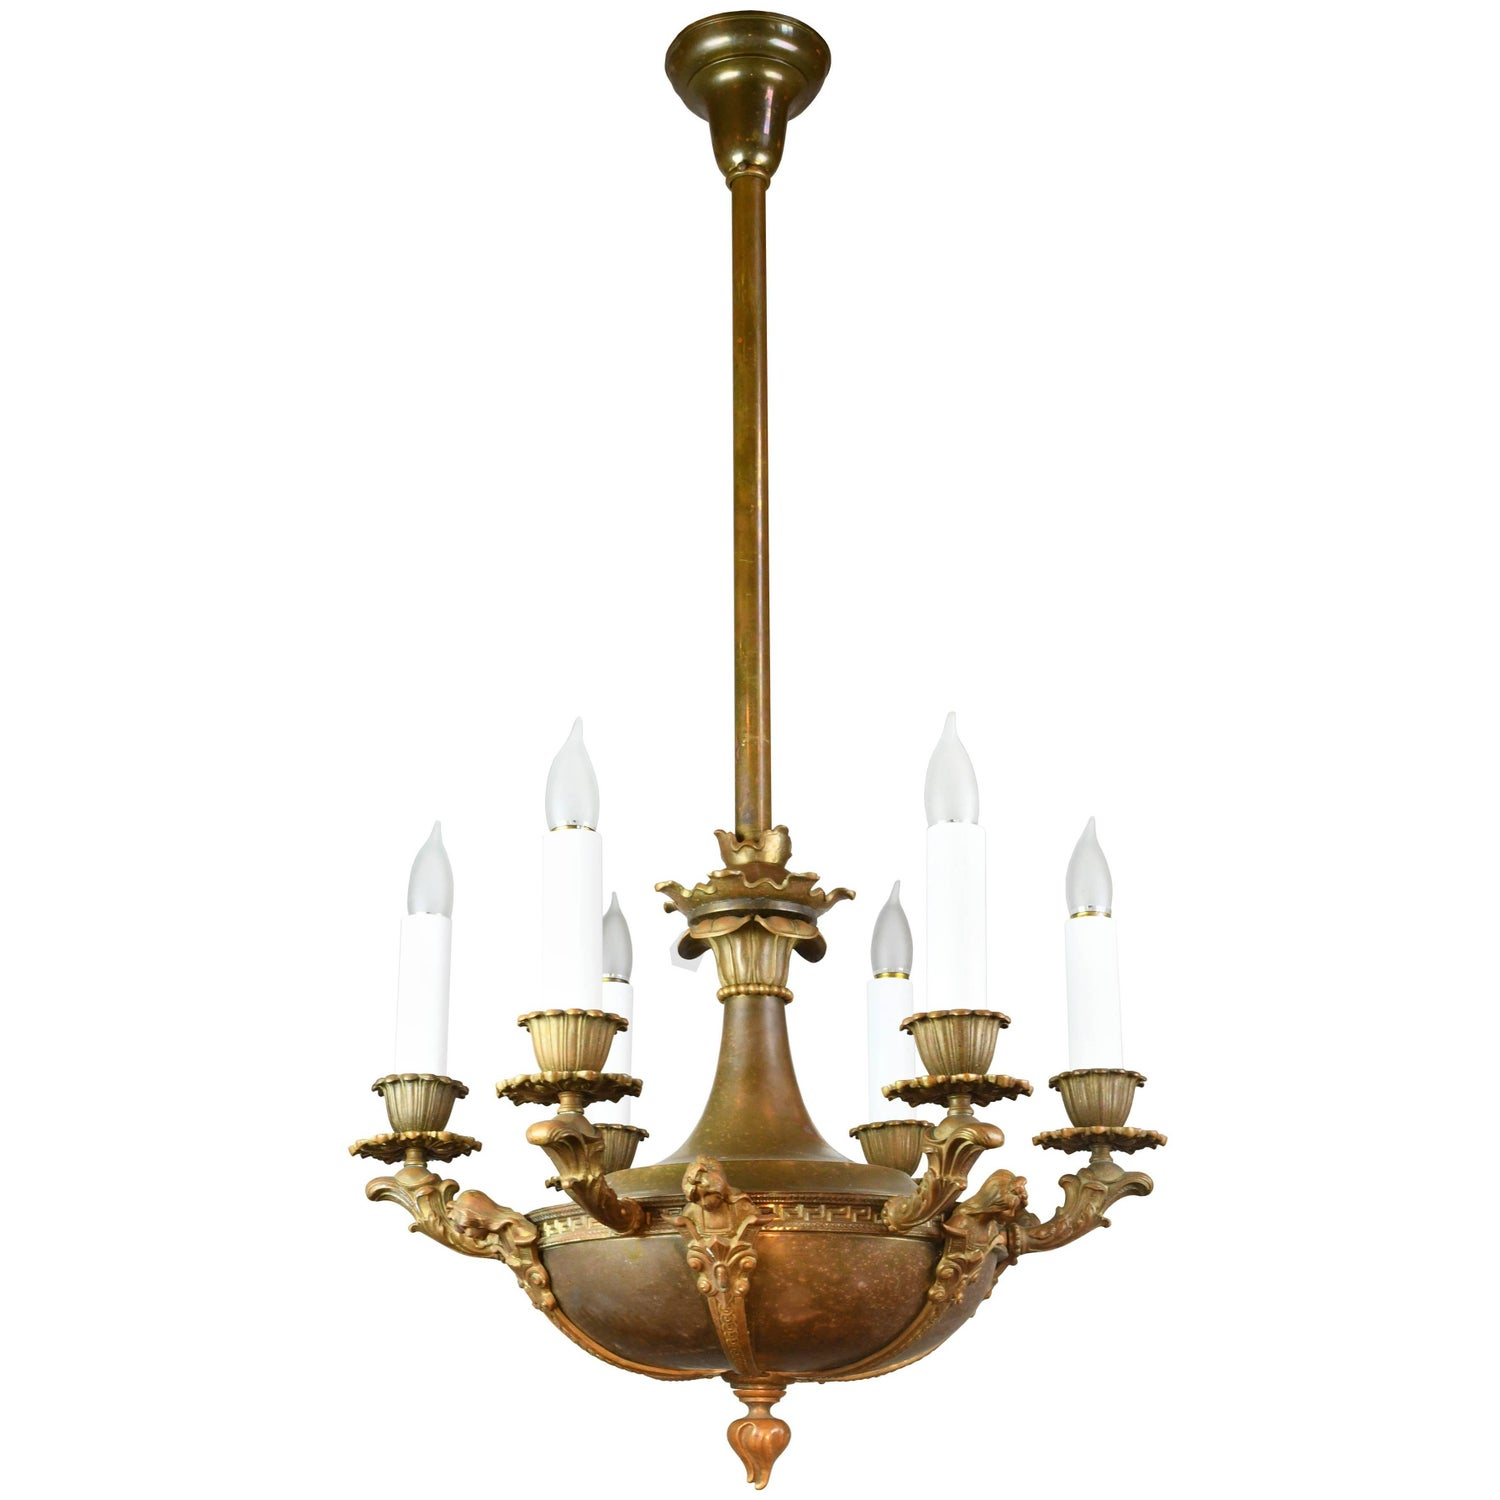 Bronze Figural Six Candle Chandelier For Sale at 1stdibs